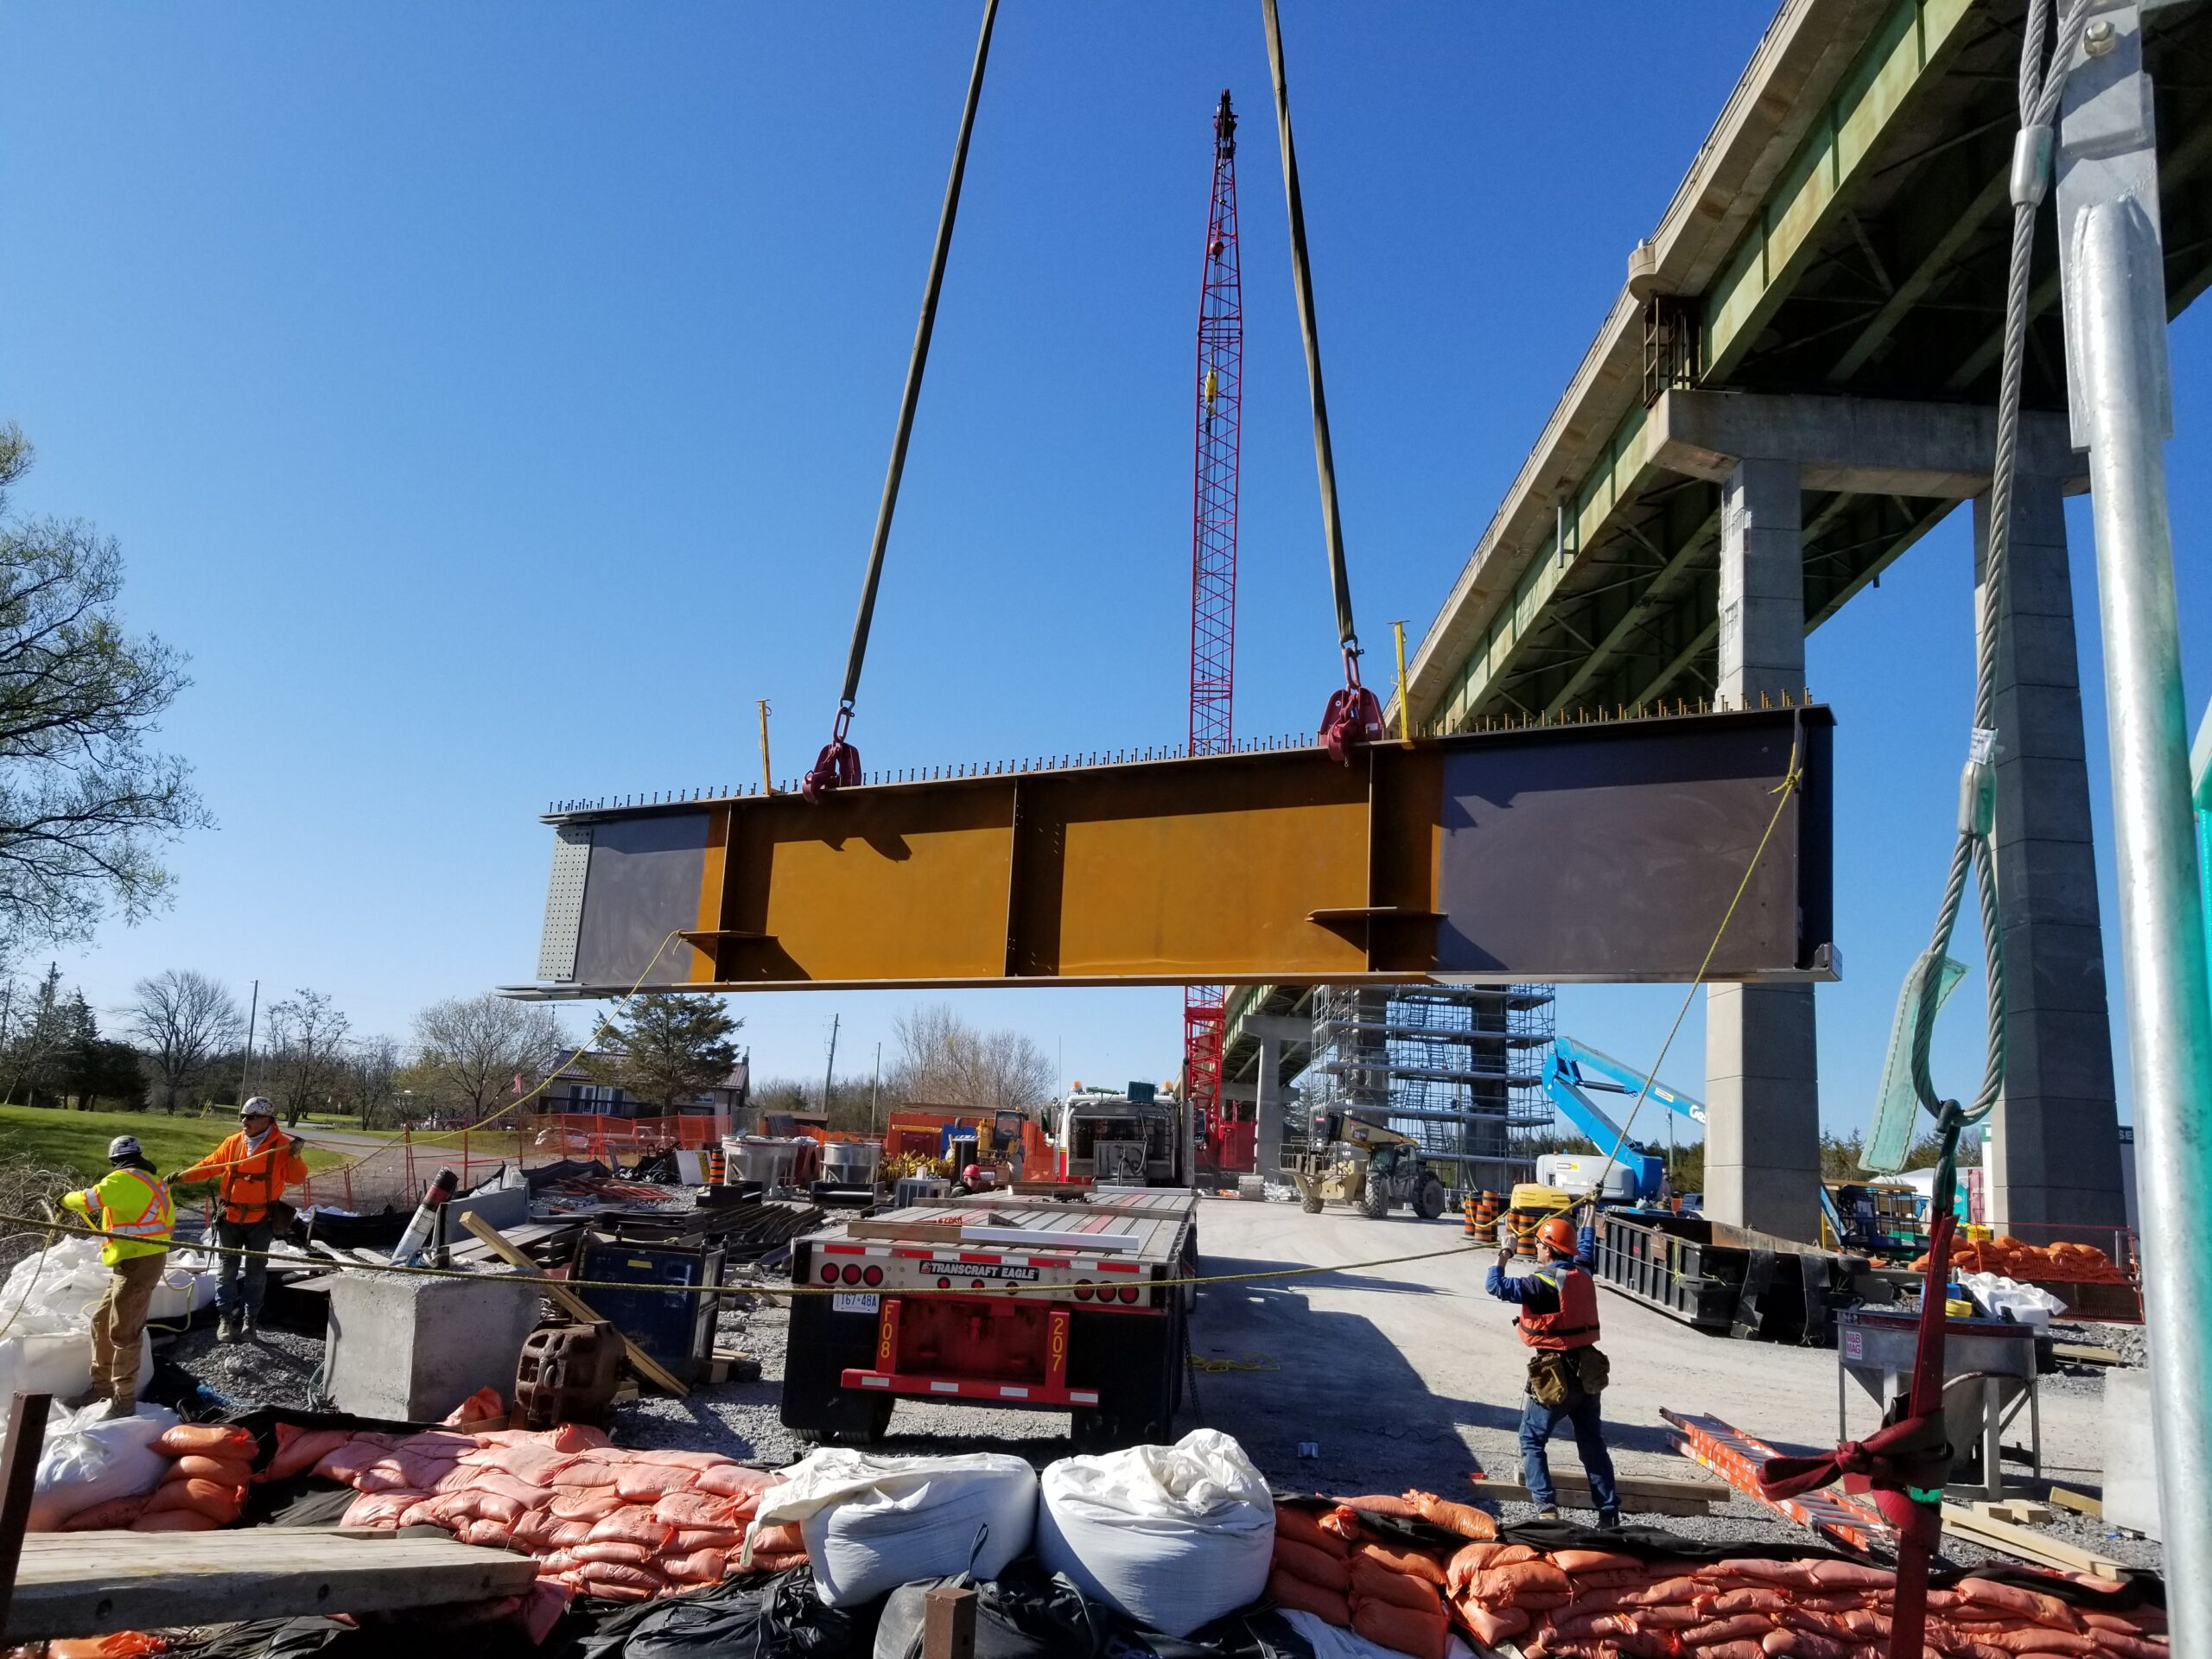 Moving girder piece from the truck using the crane